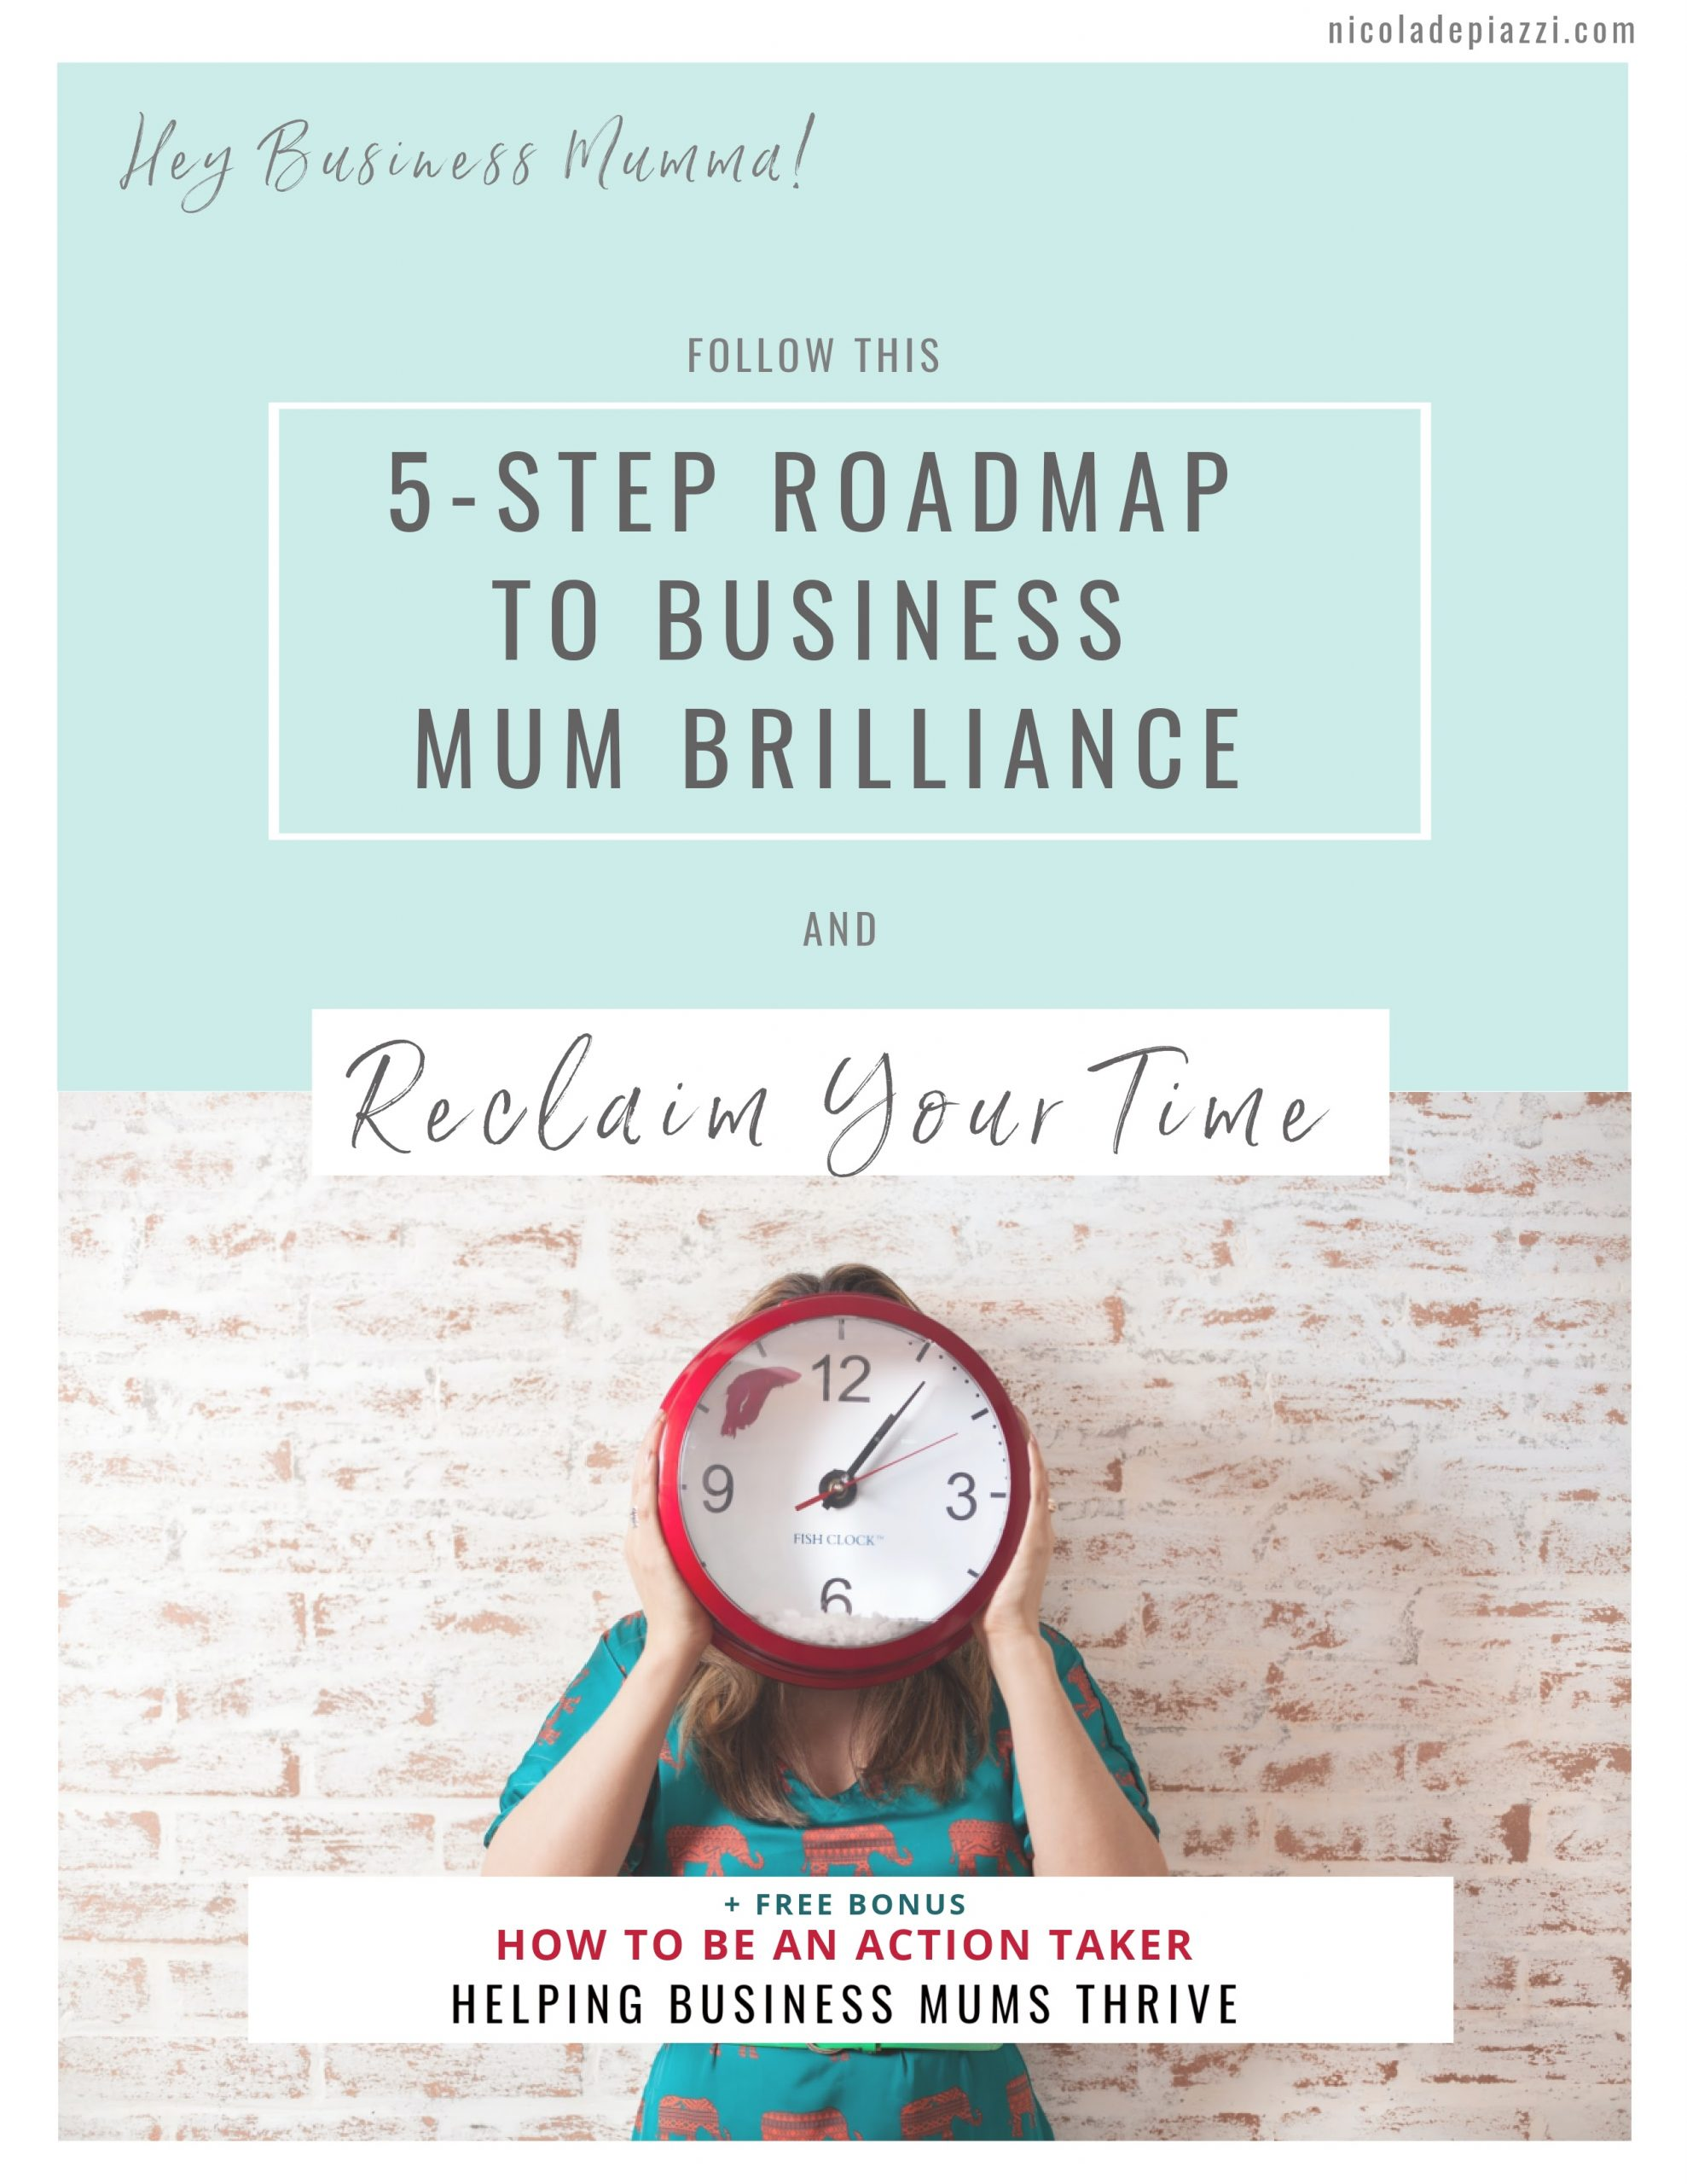 5 Steps to Business Mum Brilliance